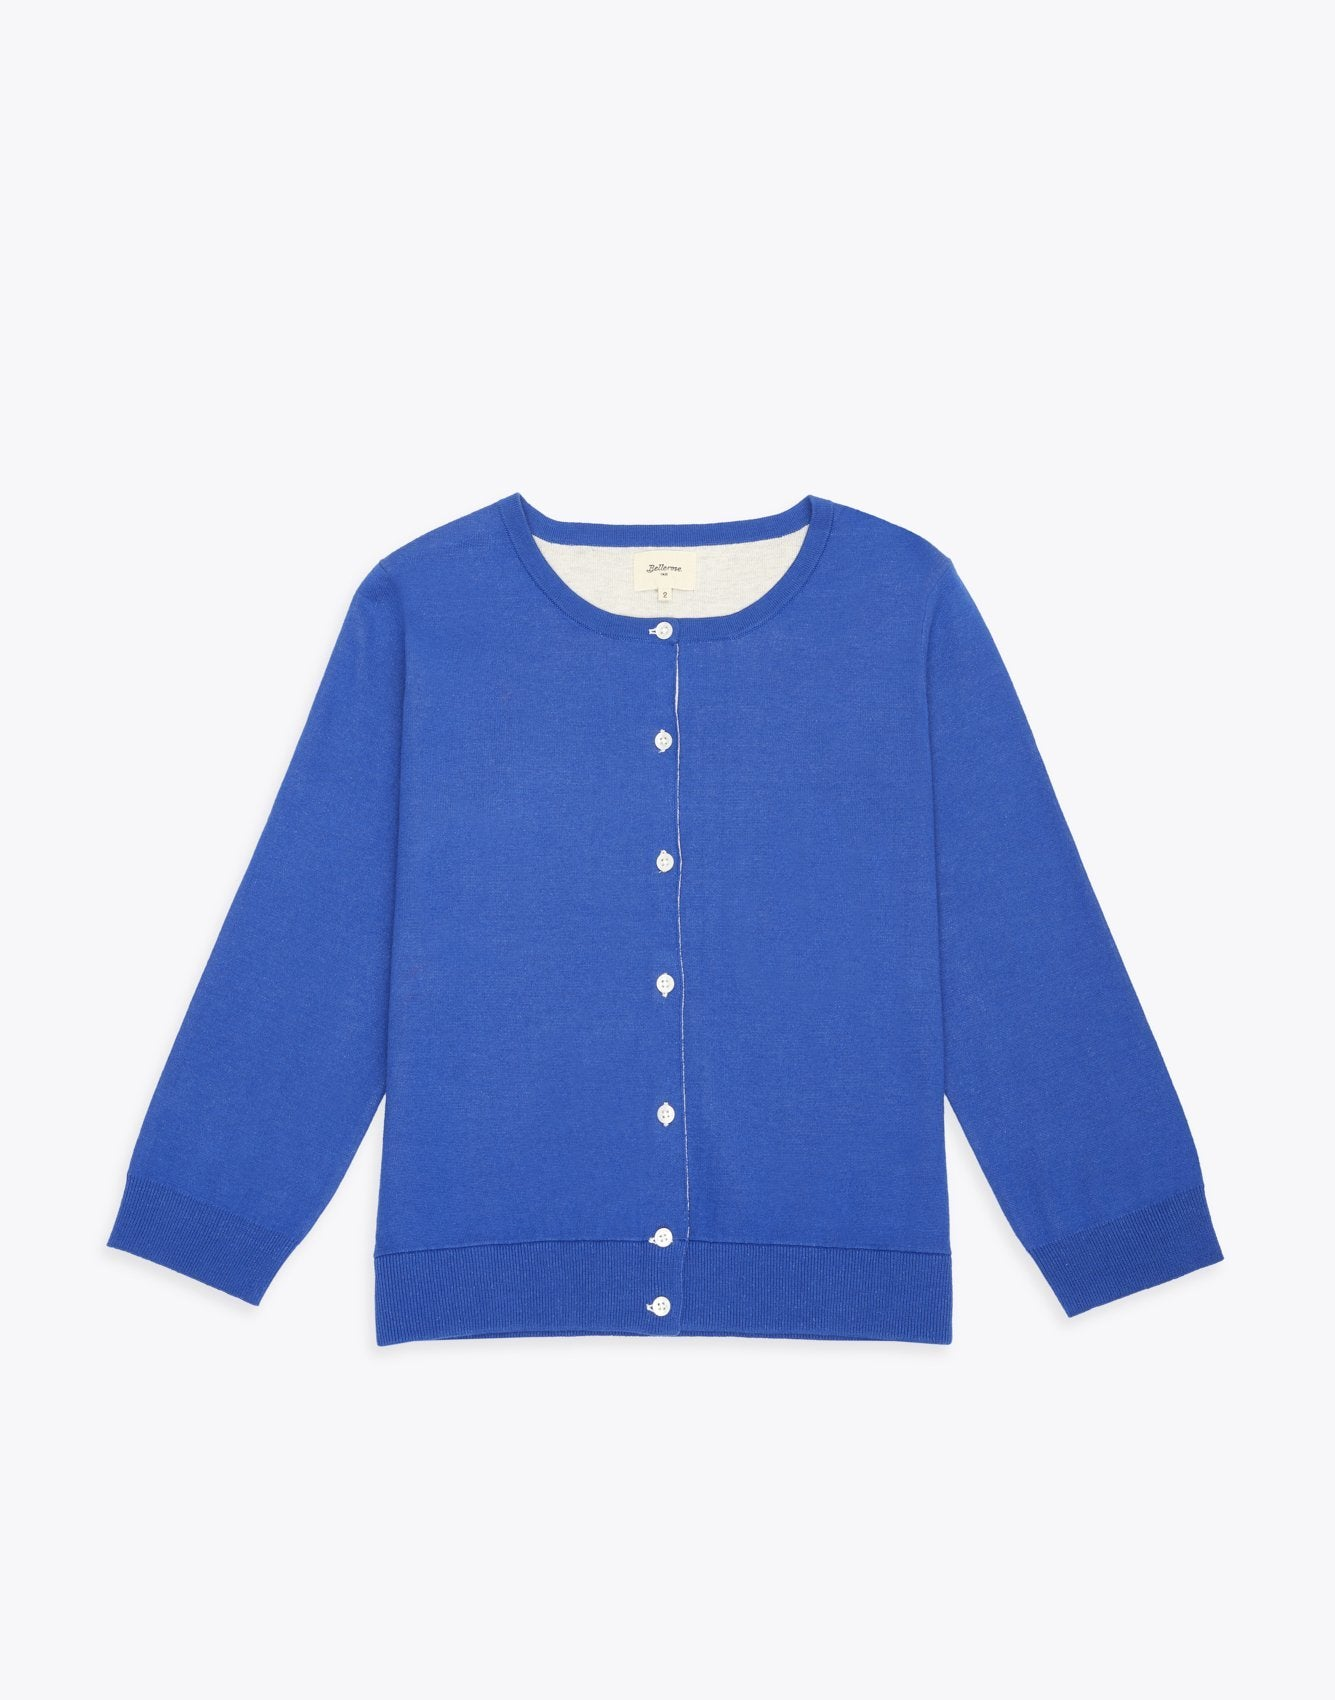 Bellerose blue knitted cotton cardigan for women